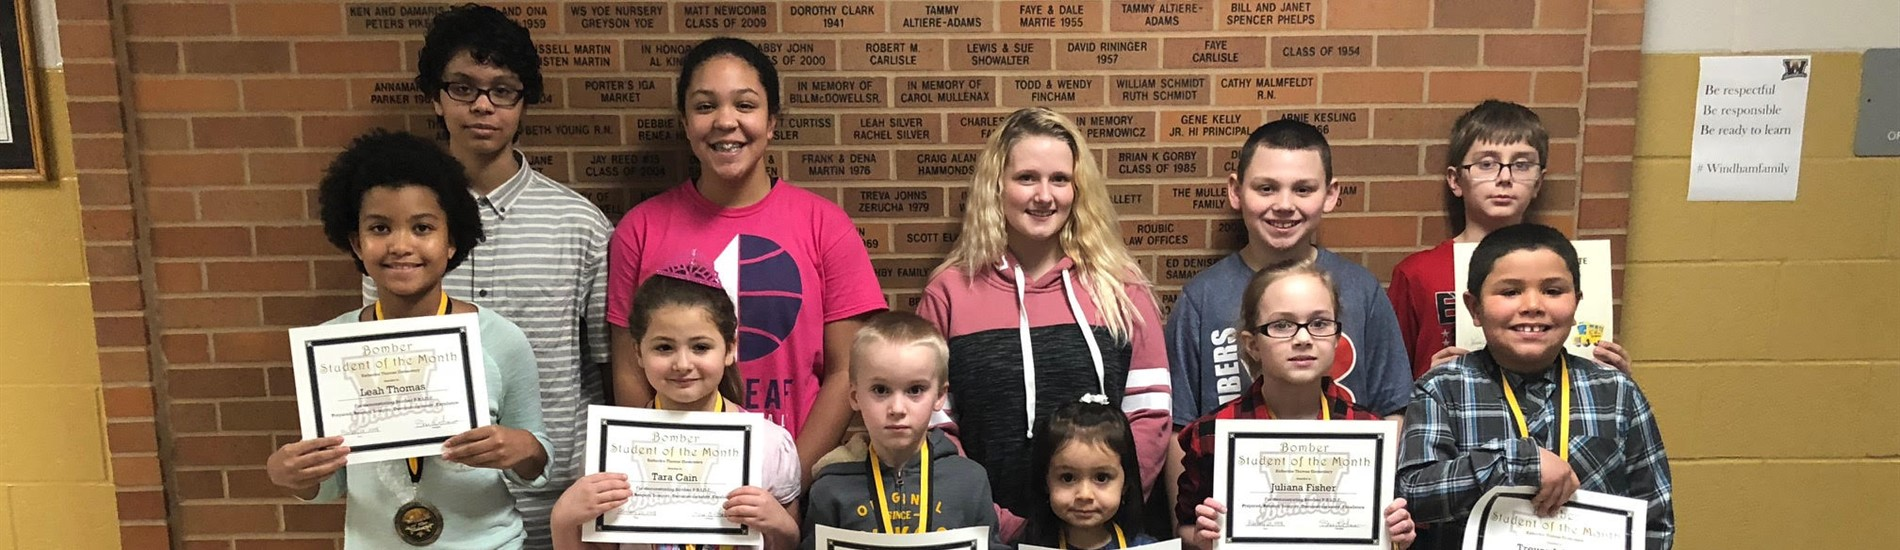 Congratulations to the February Students of the Month!